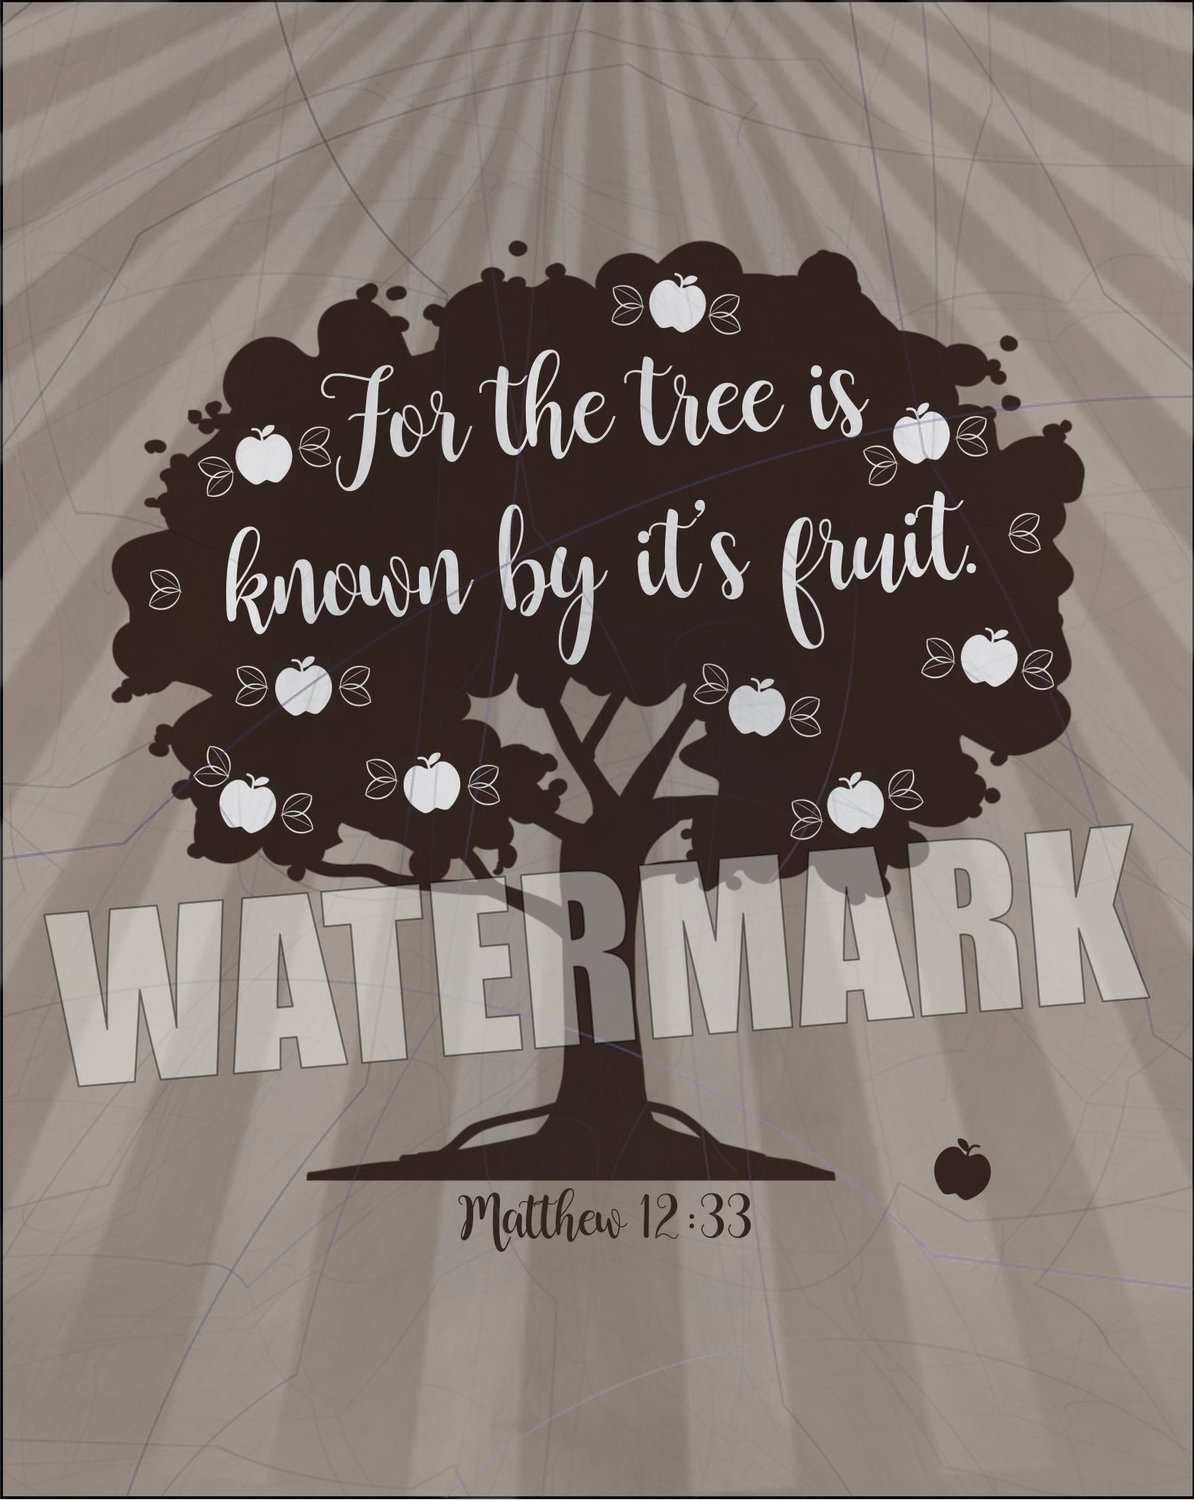 For the tree is known by its fruit. Scripture Verse Inspirational Message Instant Digital Download Print Wall Decor Graphic Art Printable Home Office (Download)